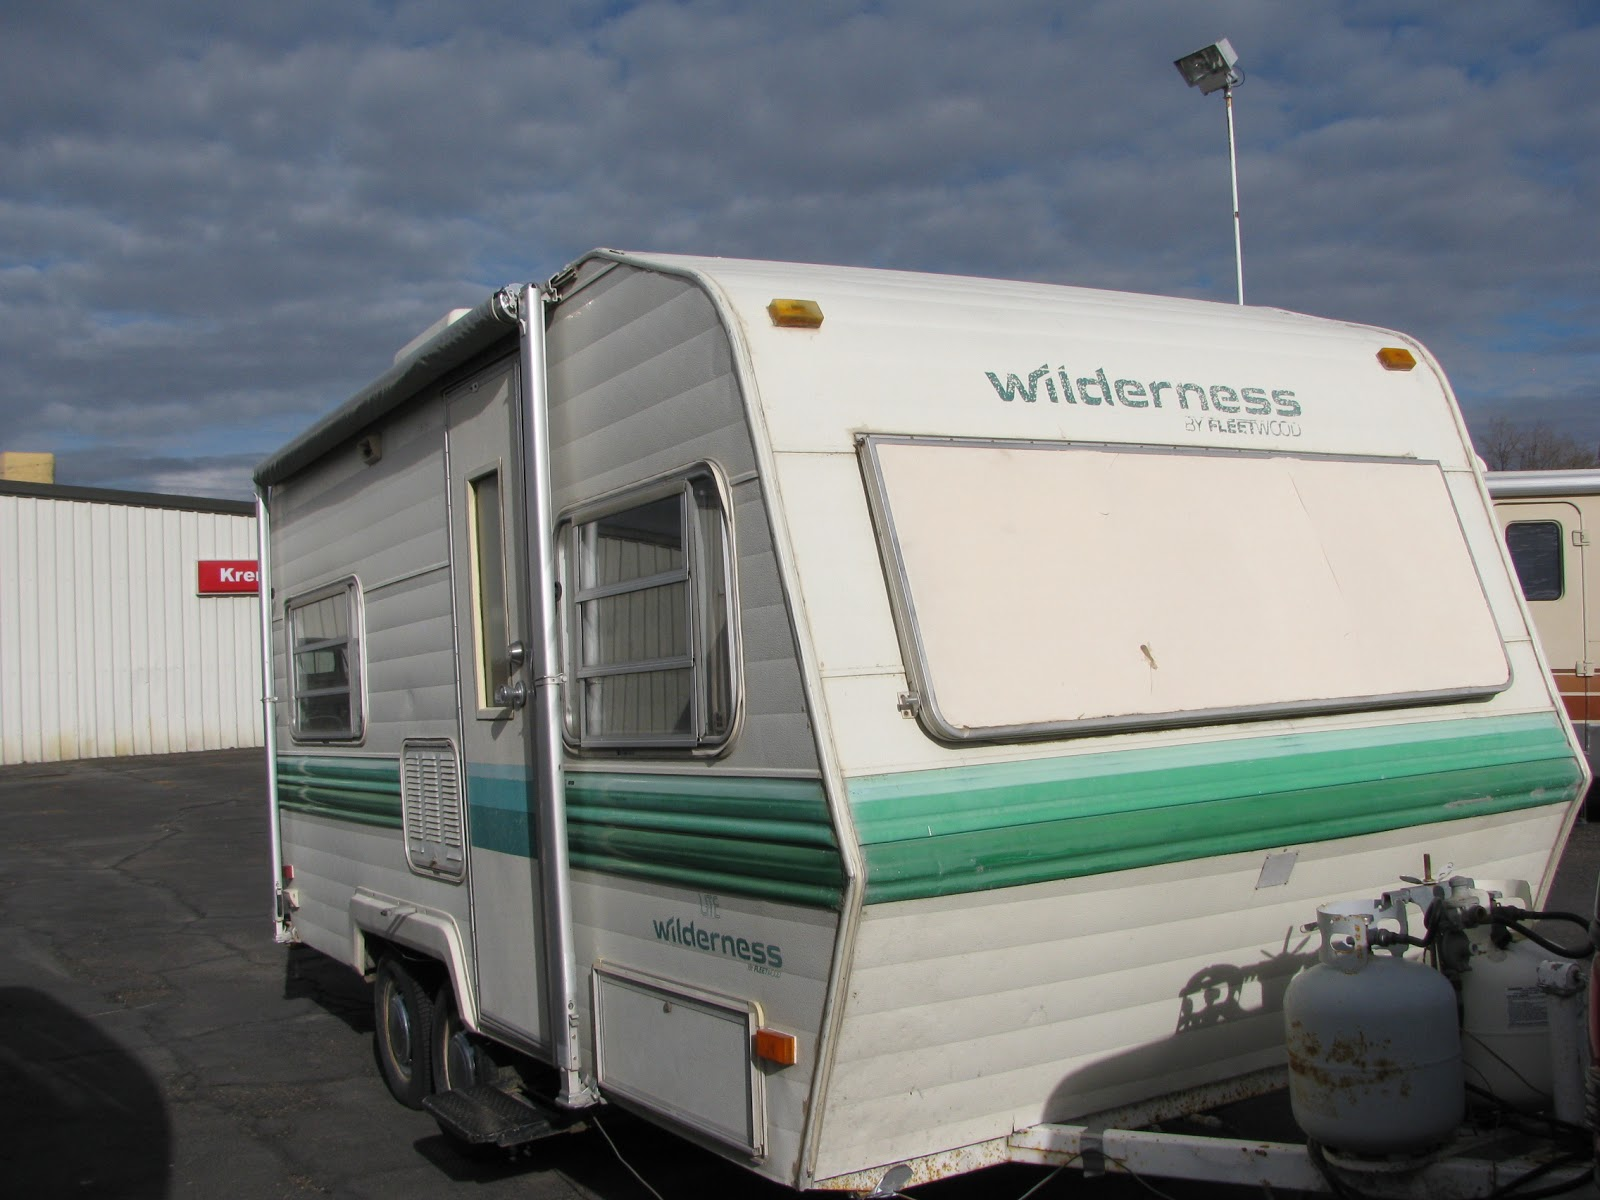 1982 Wilderness 18 ft travel trailer, Has furnace, working fridge